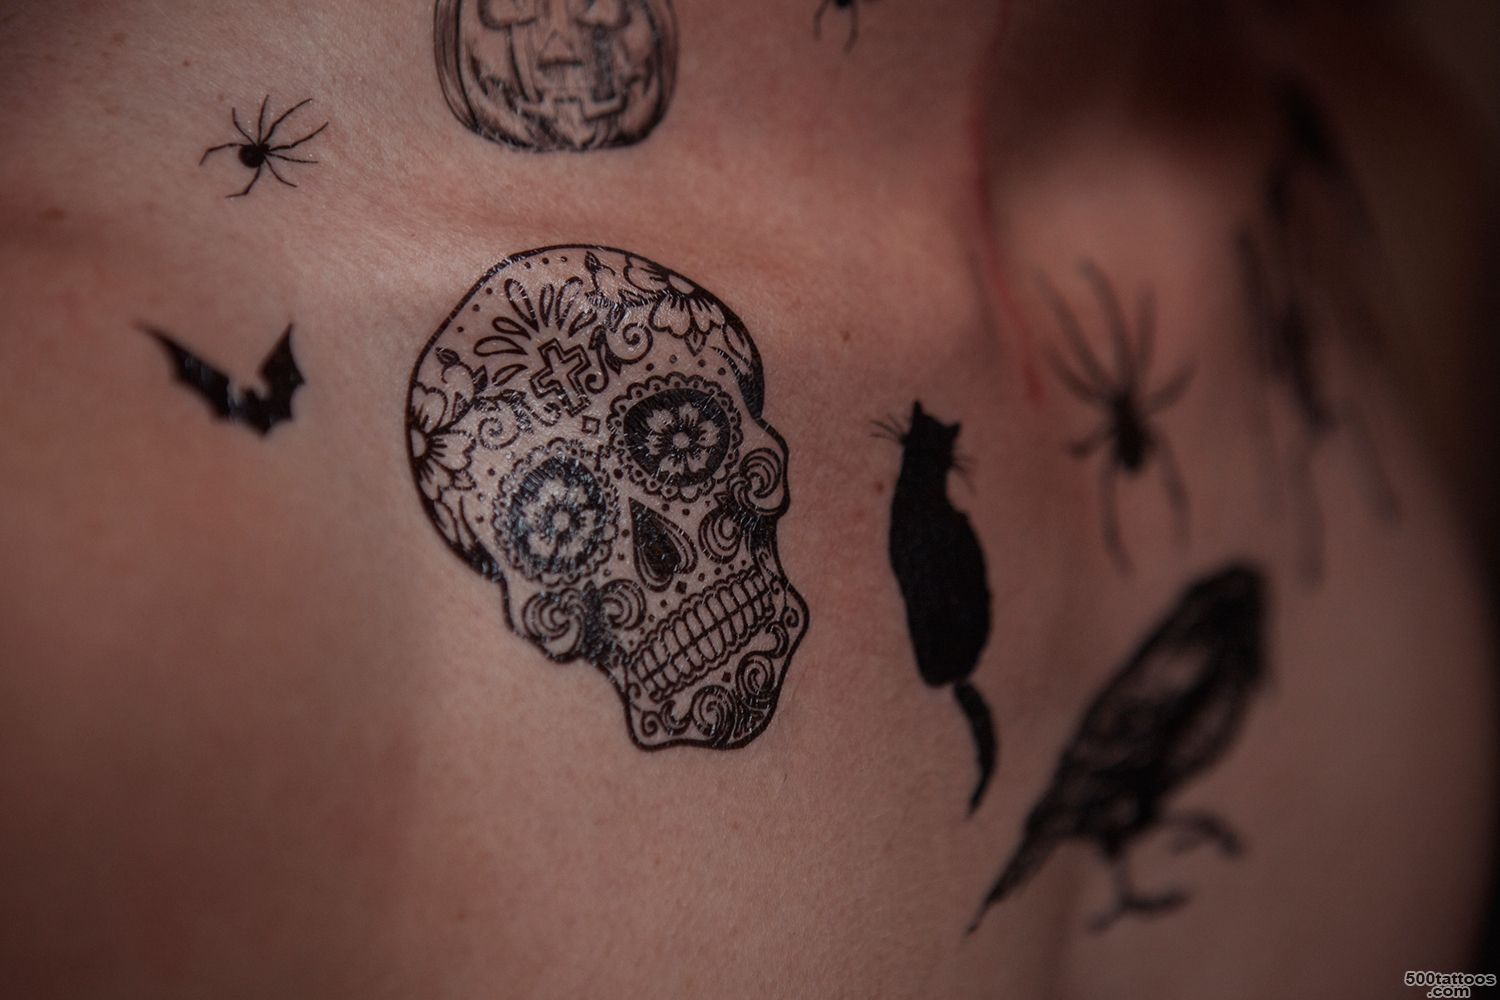 REALISTIC-collection-halloween-tattoos-for-only-8,95-euro_17.jpg